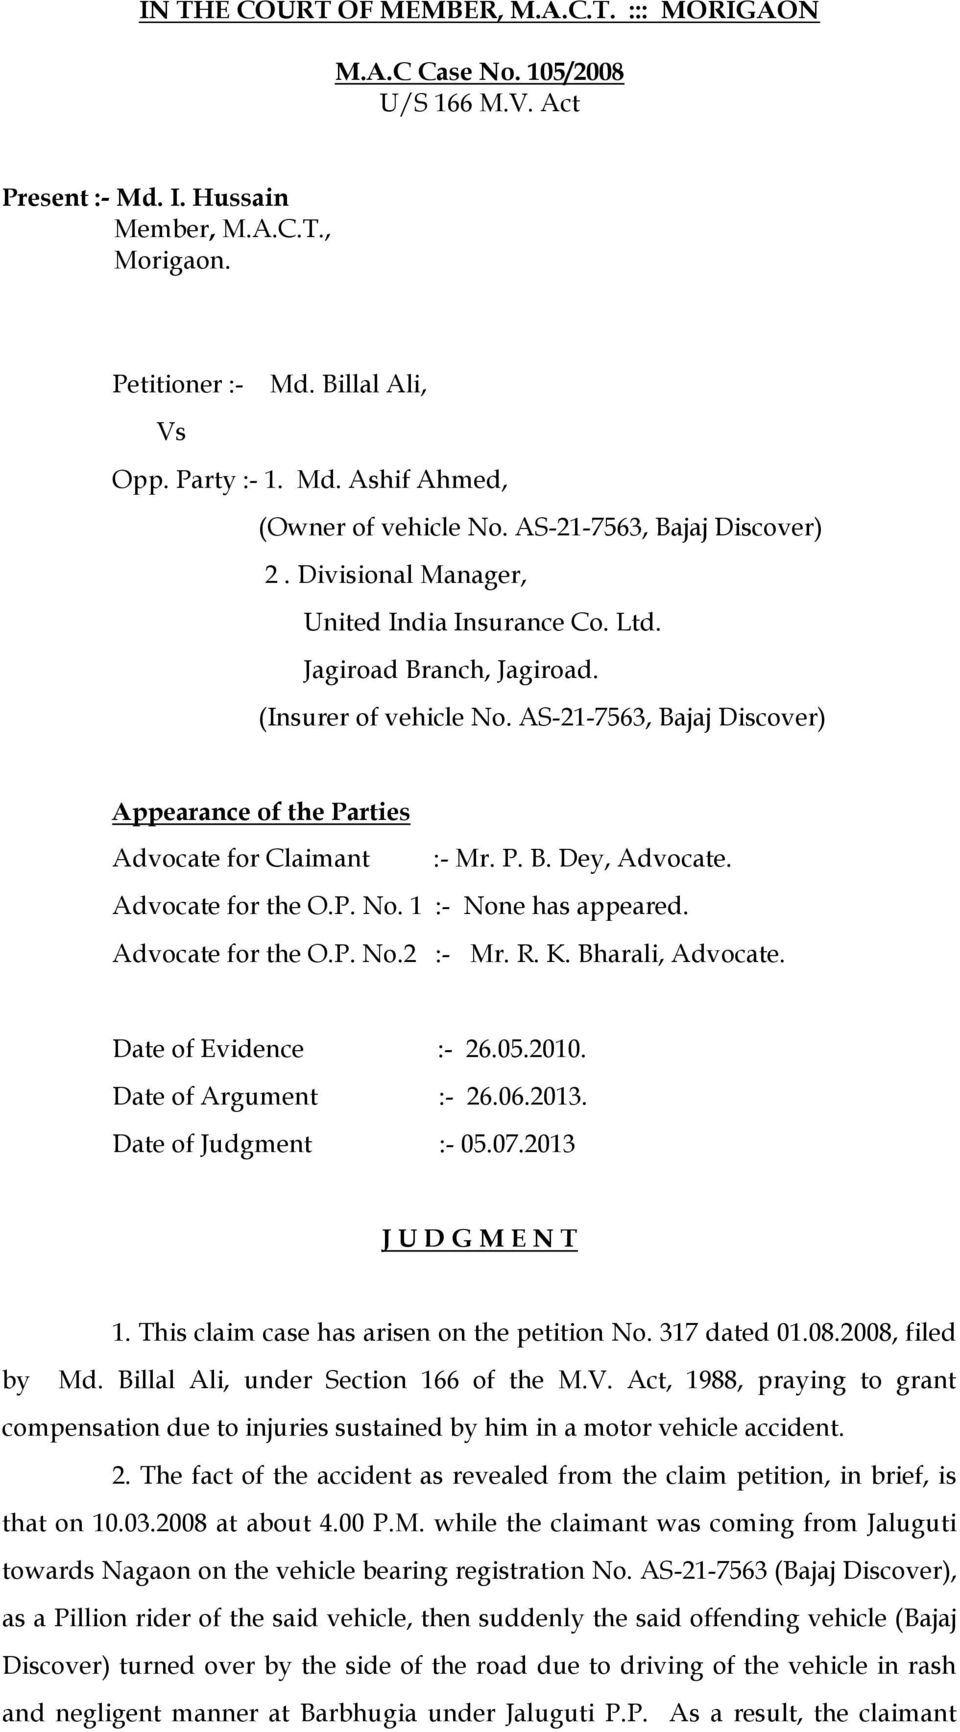 AS-21-7563, Bajaj Discover) Appearance of the Parties Advocate for Claimant :- Mr. P. B. Dey, Advocate. Advocate for the O.P. No. 1 :- None has appeared. Advocate for the O.P. No.2 :- Mr. R. K.